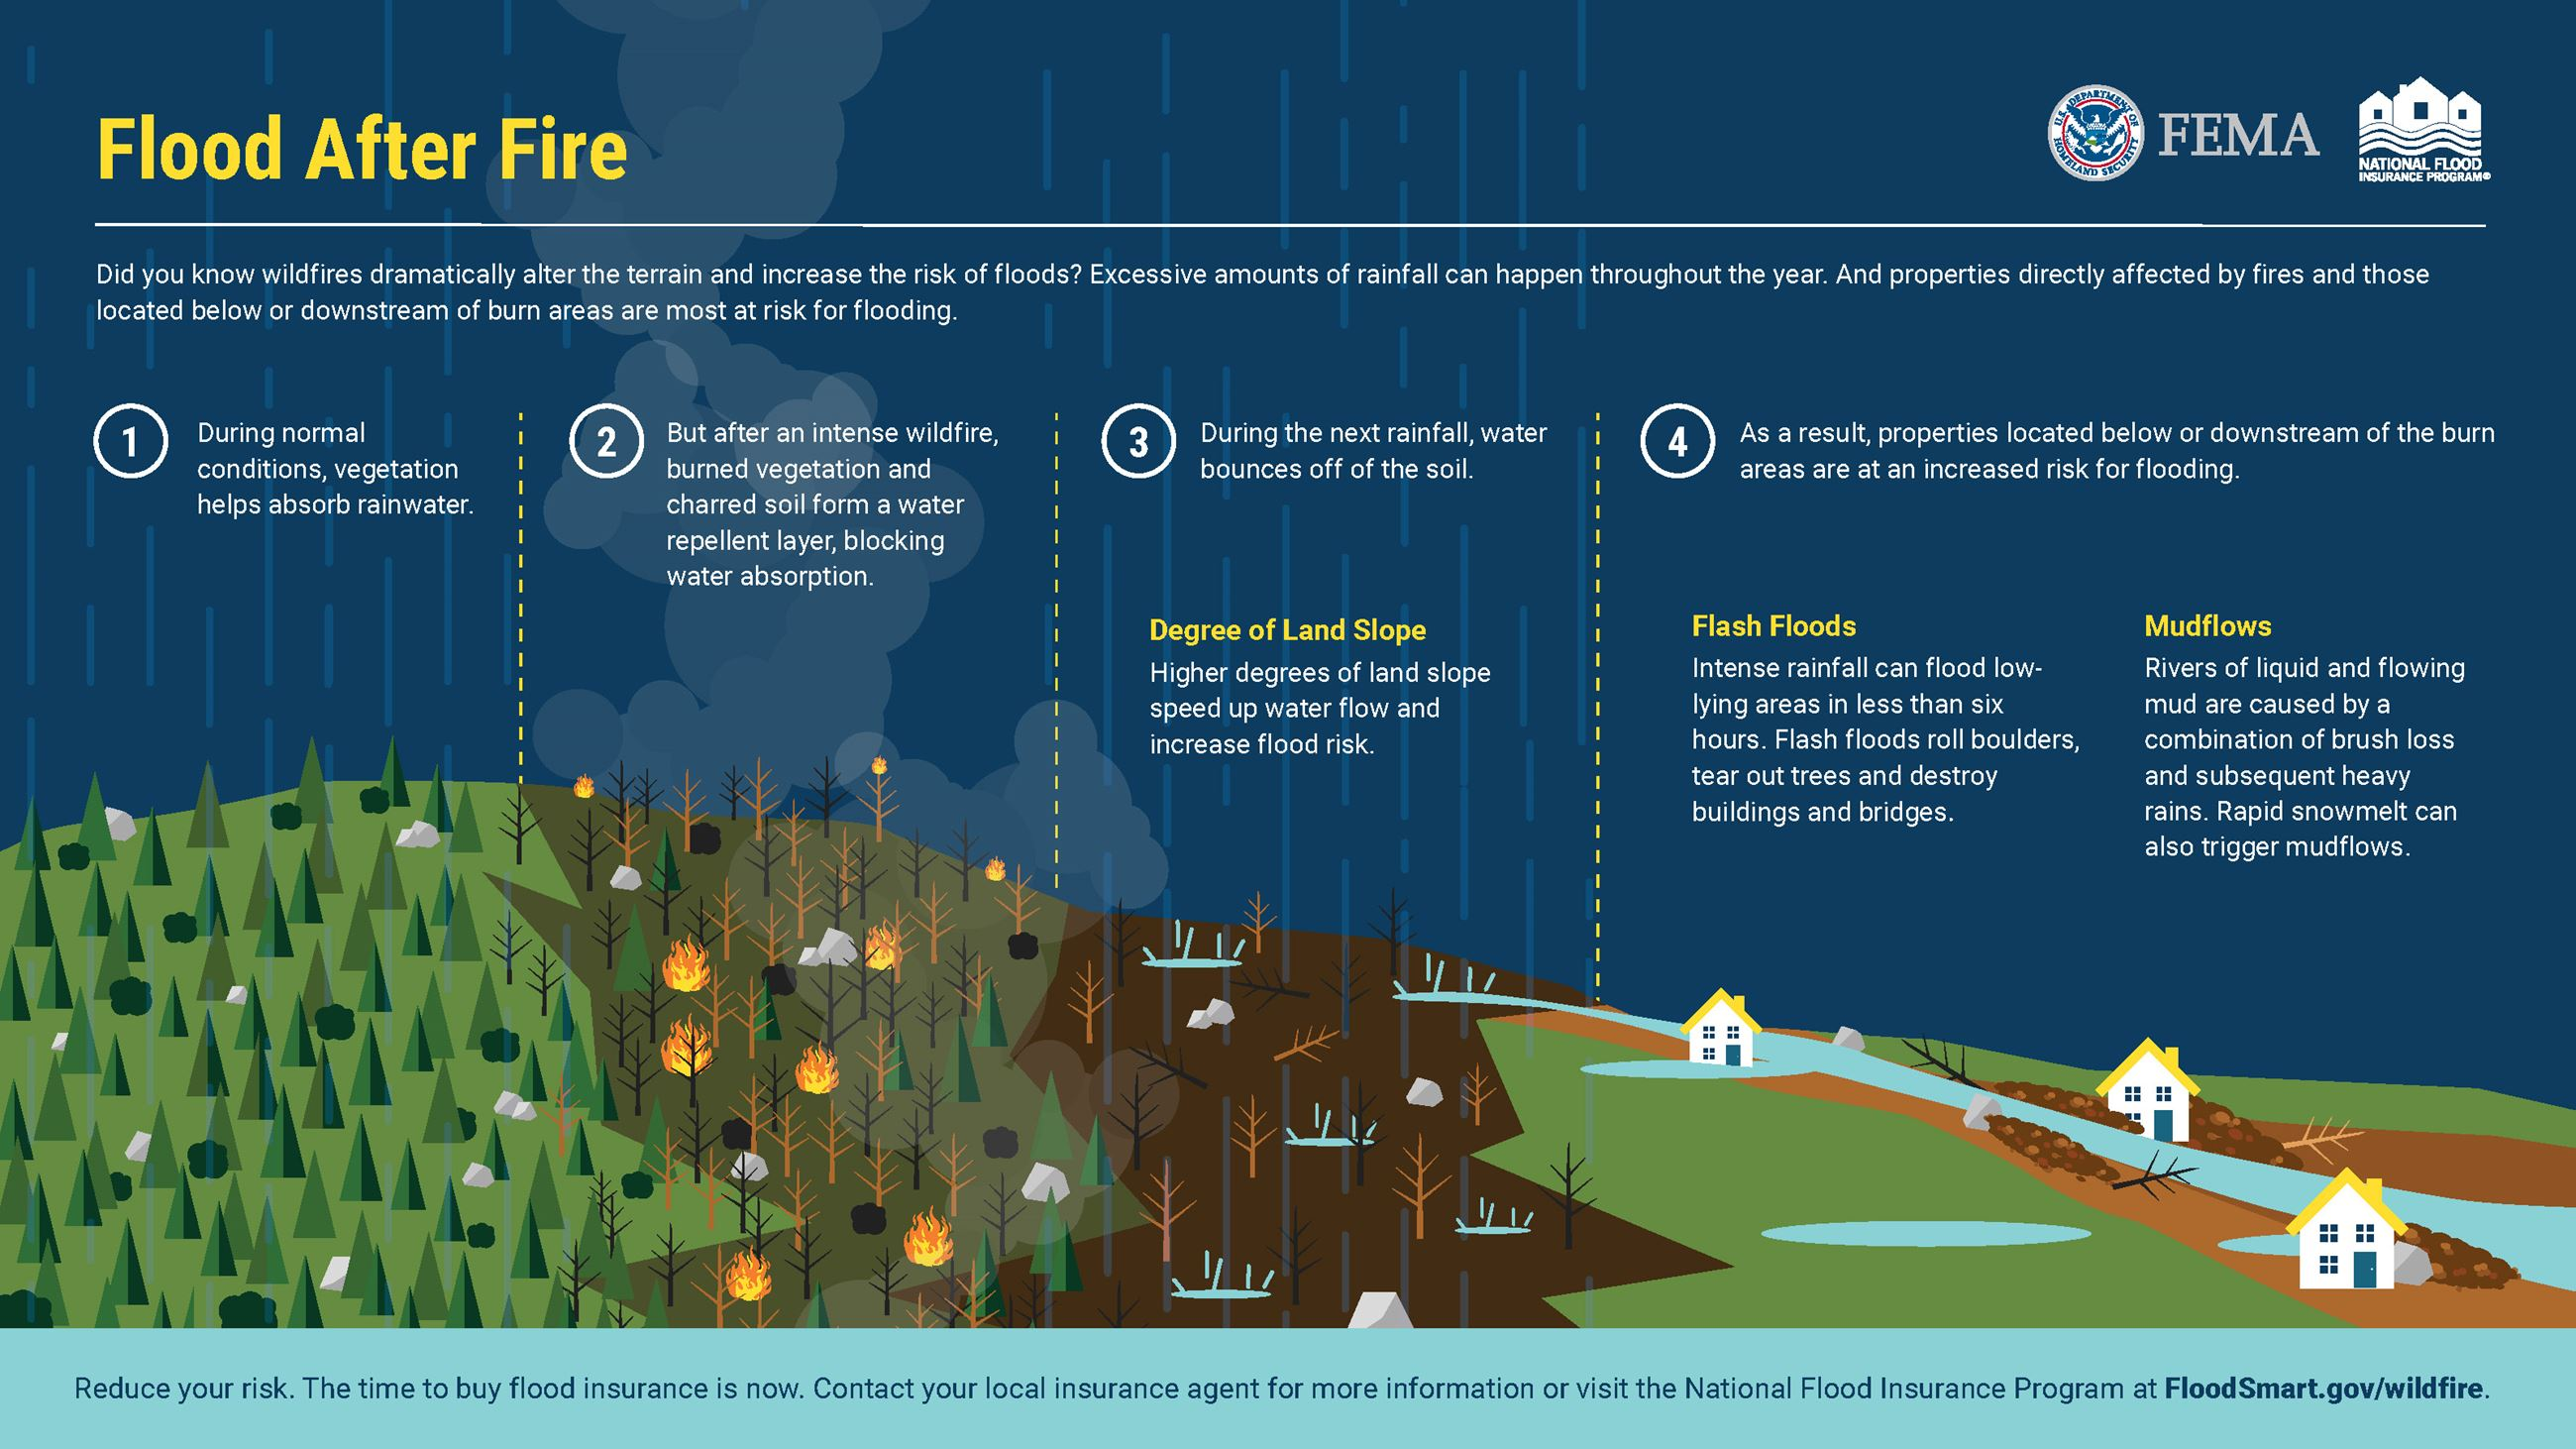 FloodAfterFire_Infographic